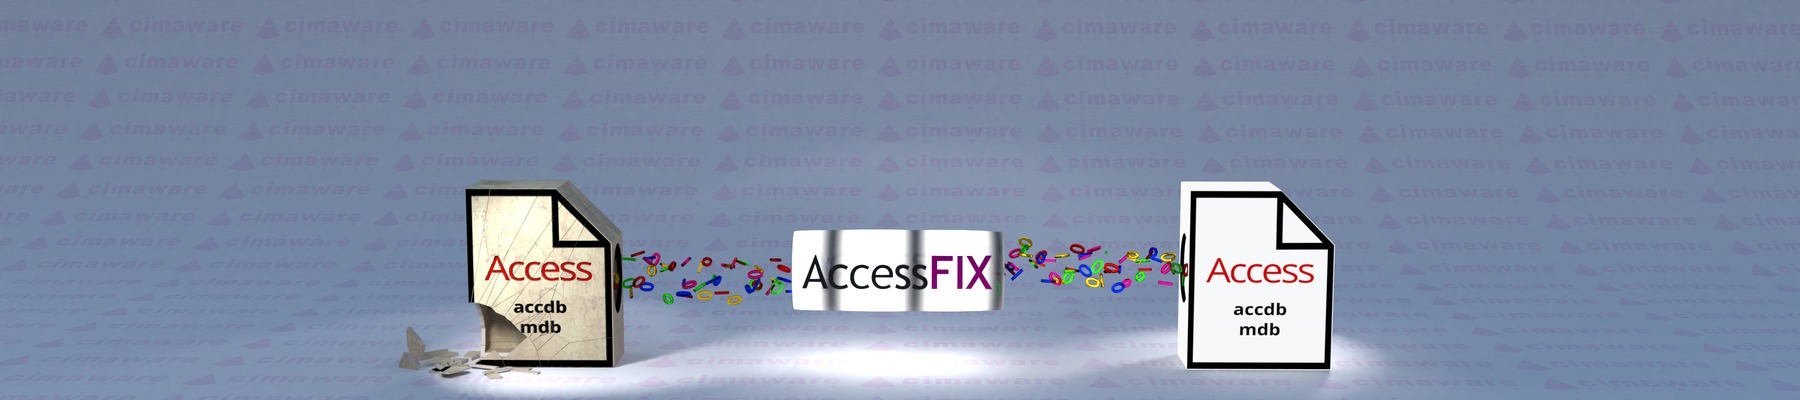 AccessFIX repairs corrupt Access database files by copying all undamaged content to a new error-free file.